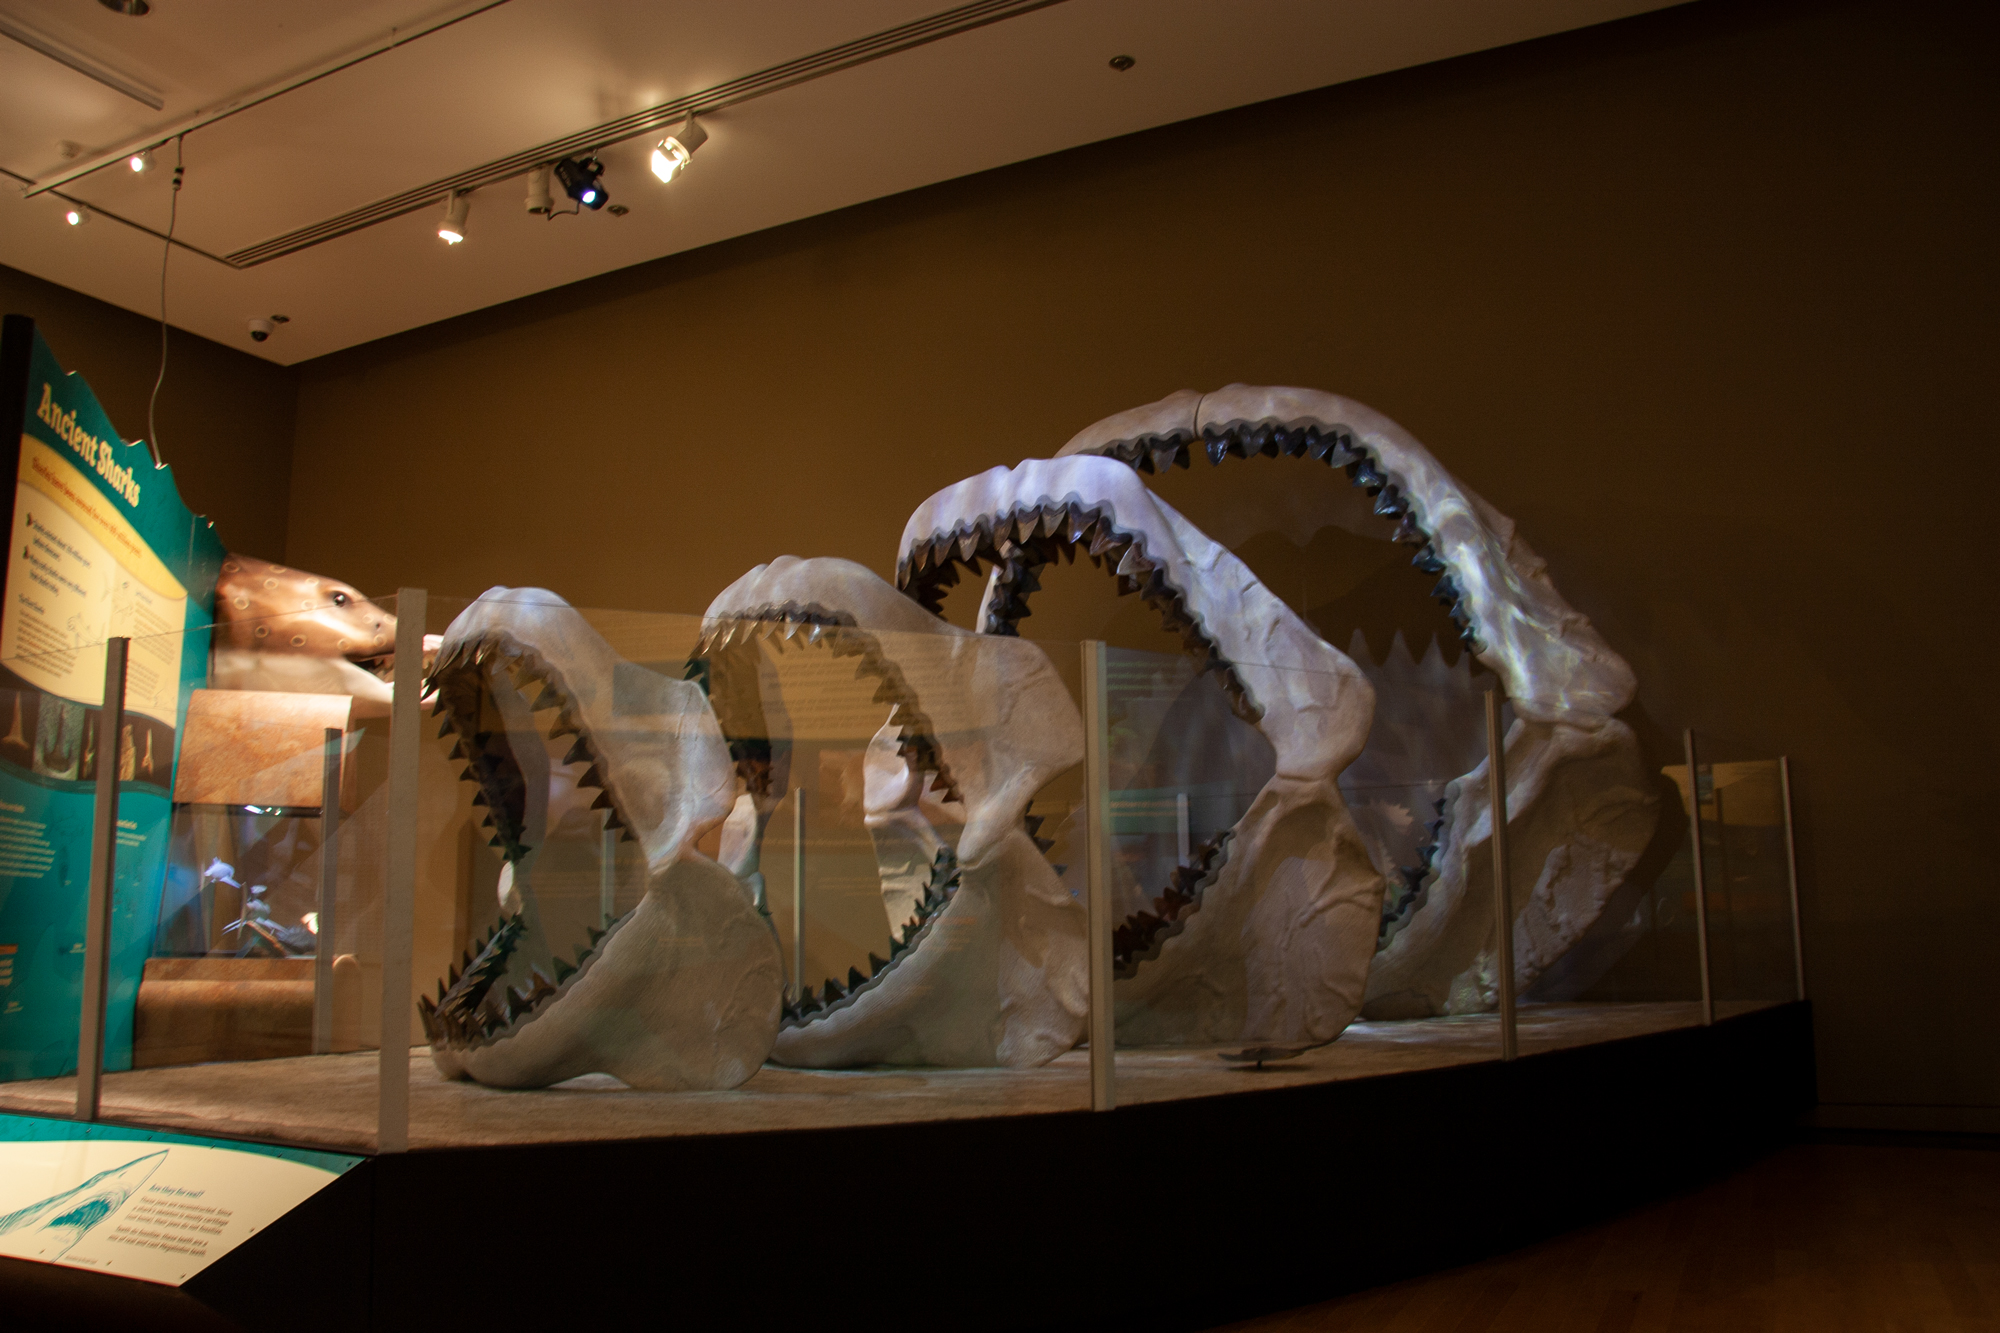 The Megalodon's story is now told at the Sam Noble Oklahoma Museum of Natural History in Norman.{ } (SNOMoNH)